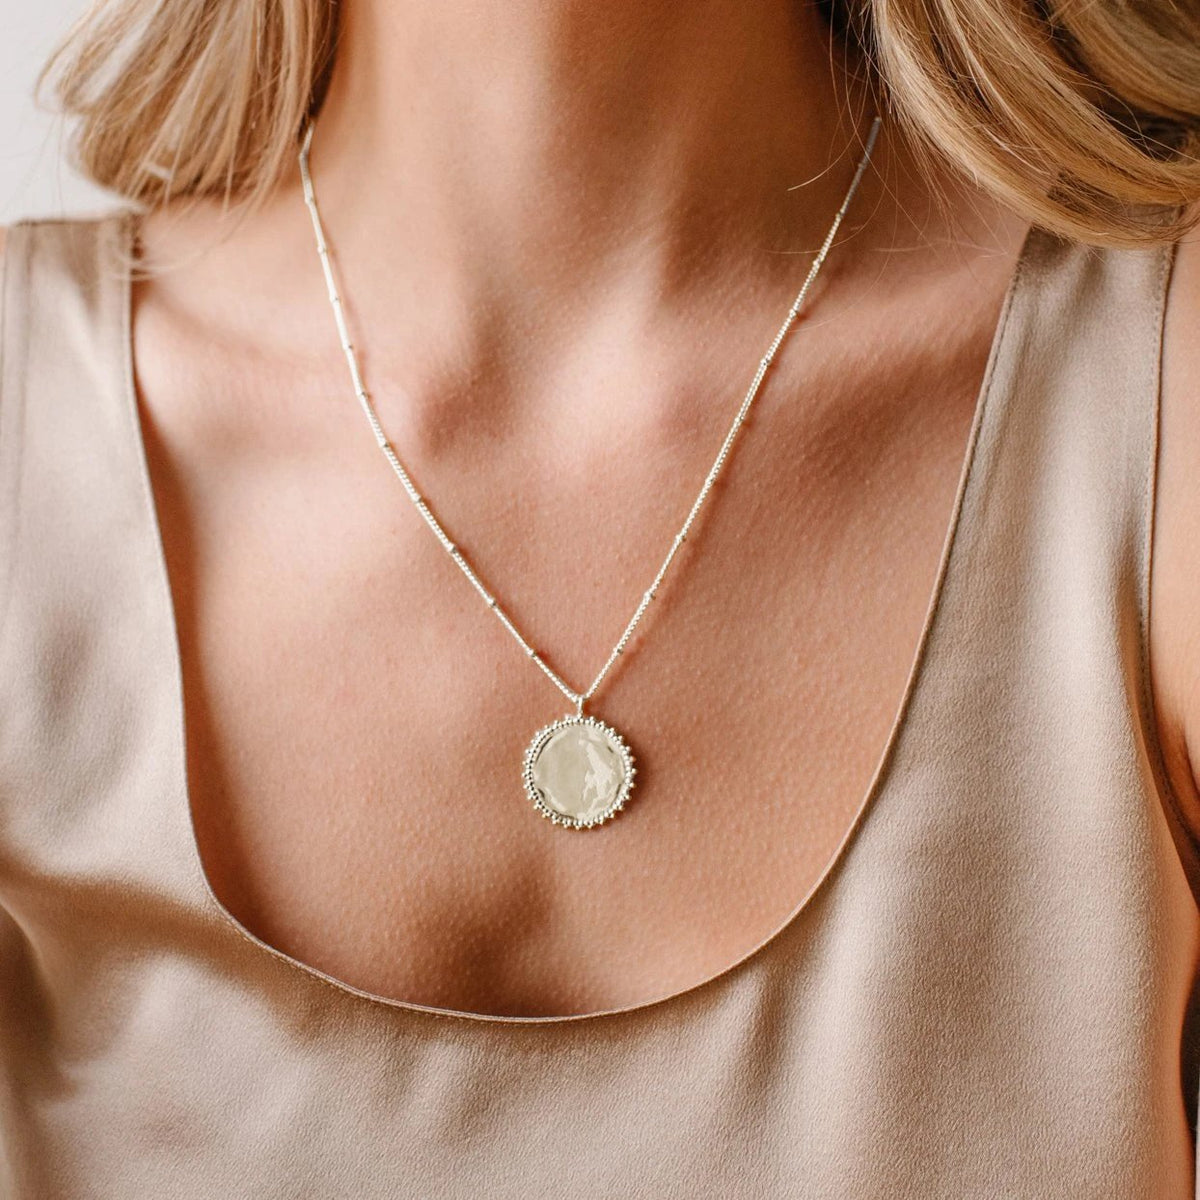 BELIEVE SOLEIL COIN PENDANT NECKLACE - SILVER - SO PRETTY CARA COTTER